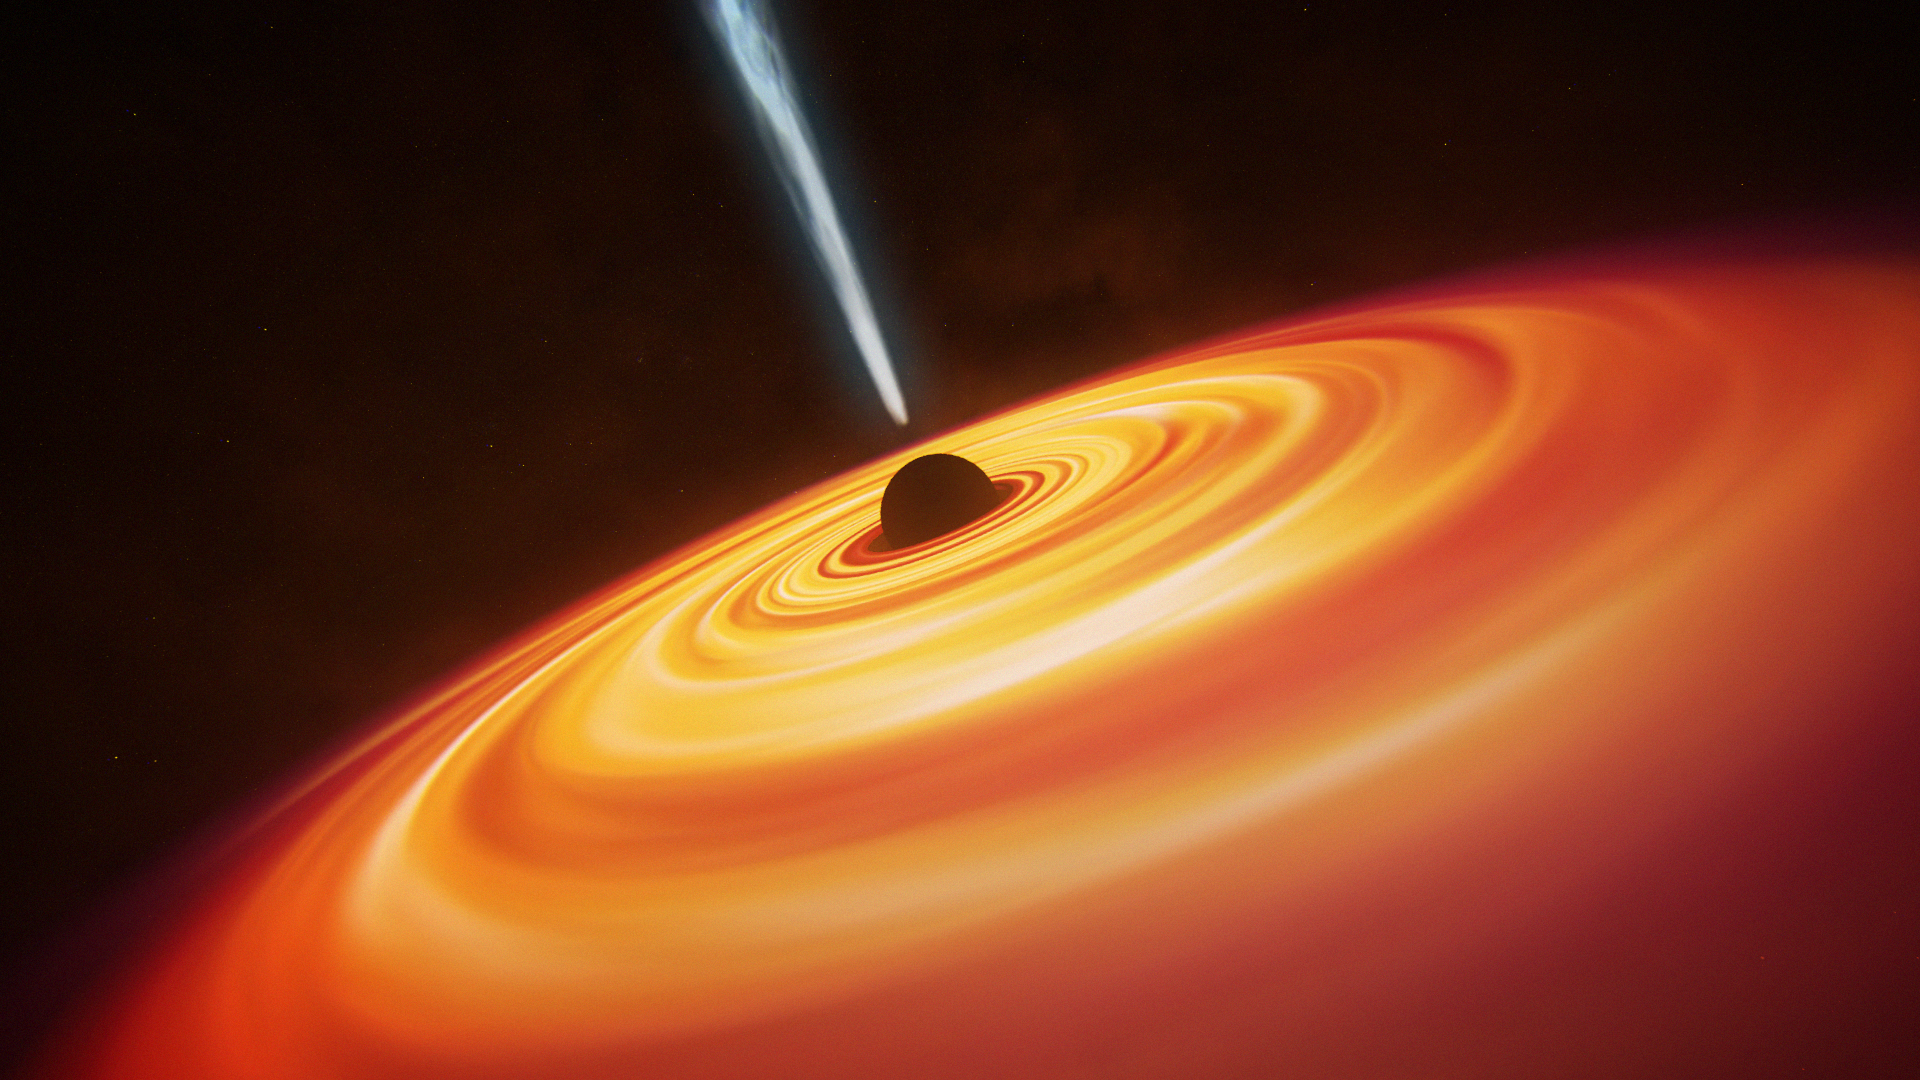 An artist's impression of a black hole.